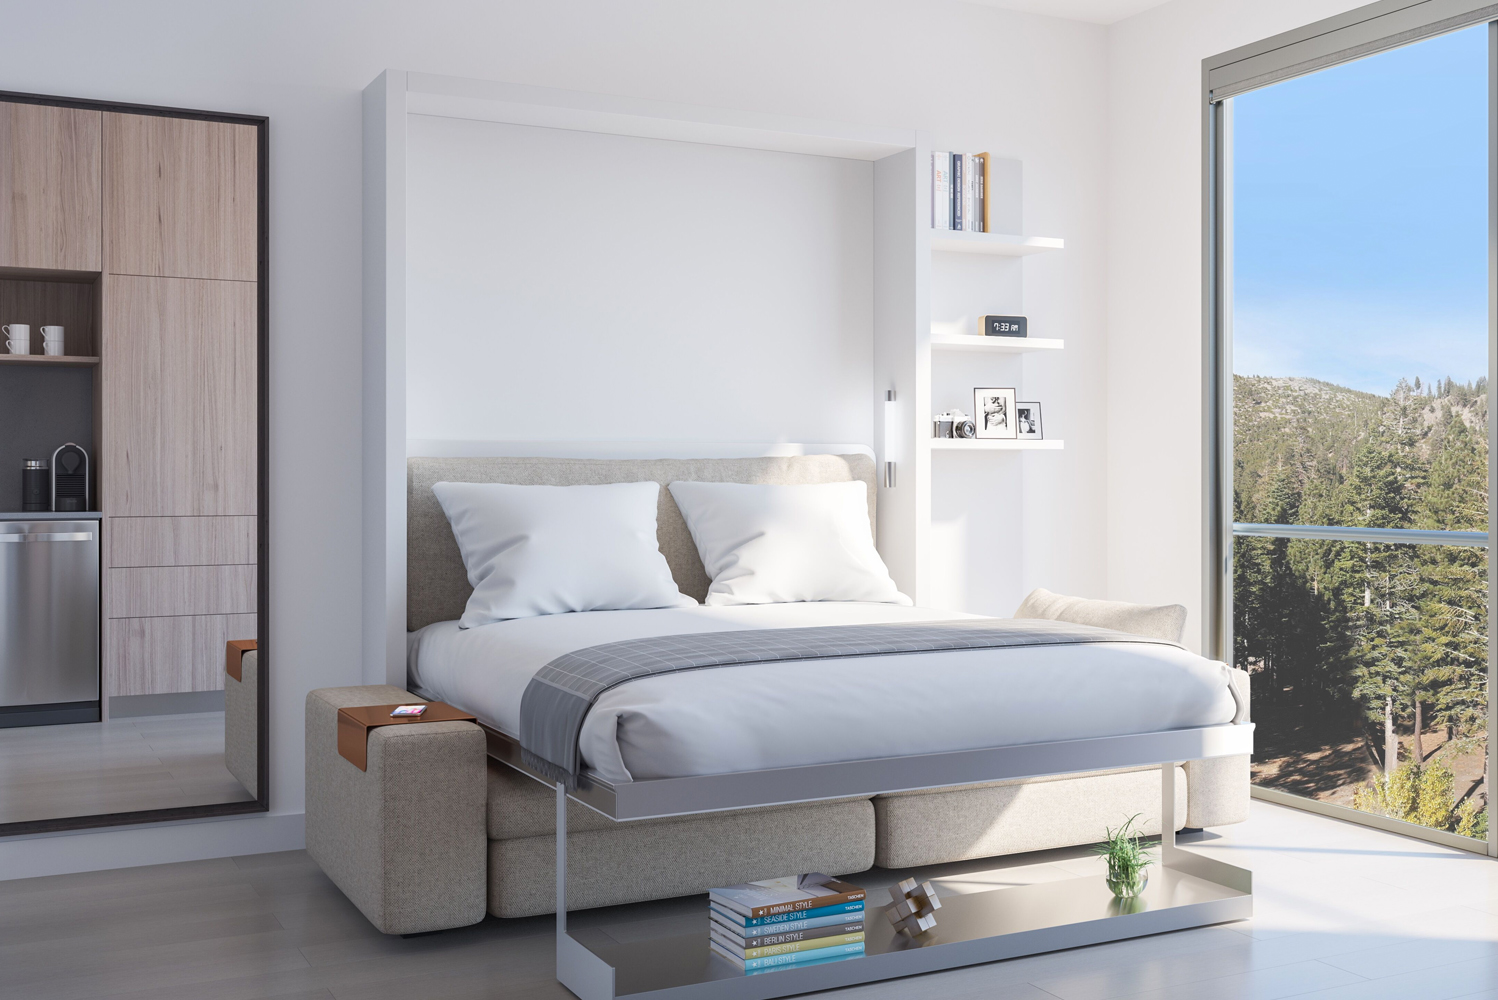 YotelPad Mammoth will have 156 PADs with flexible and adaptable spaces, ranging from 410 square feet to 629 square feet.